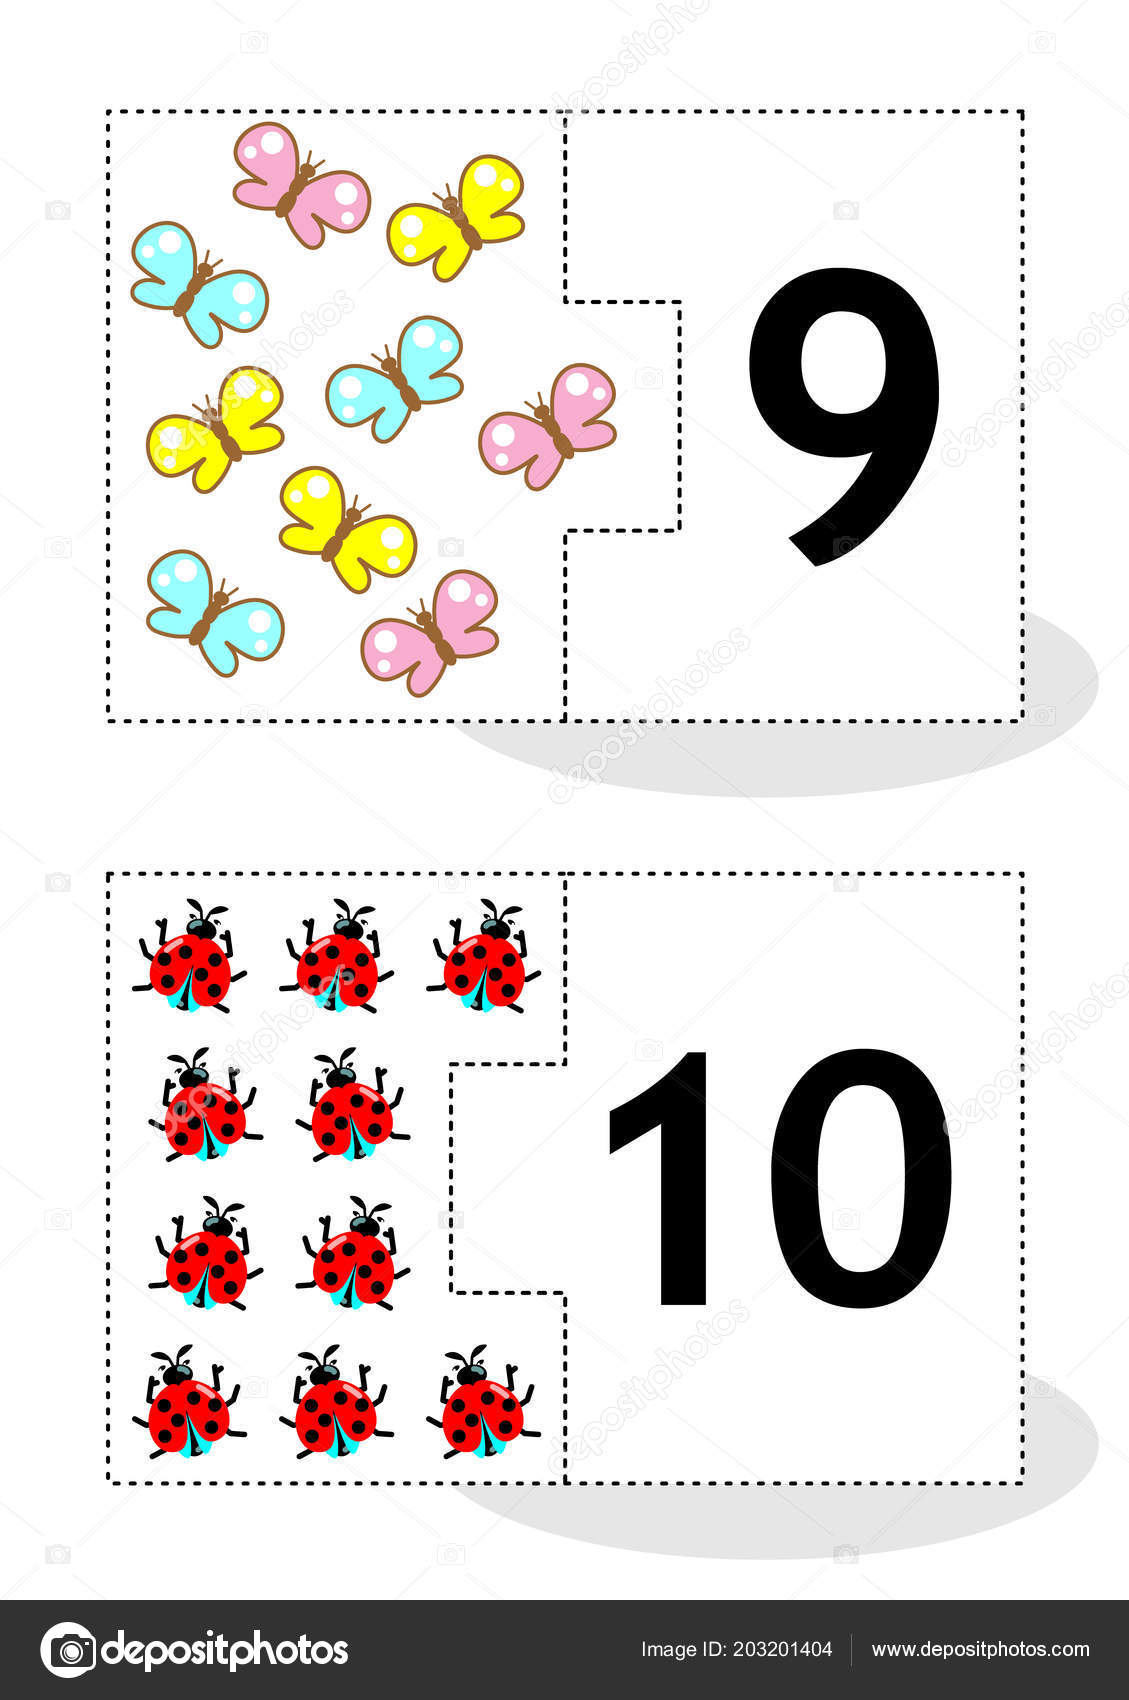 Learn Counting Part Puzzle Cards Cut Out Play Butterflies Ladybugs Stockvektor